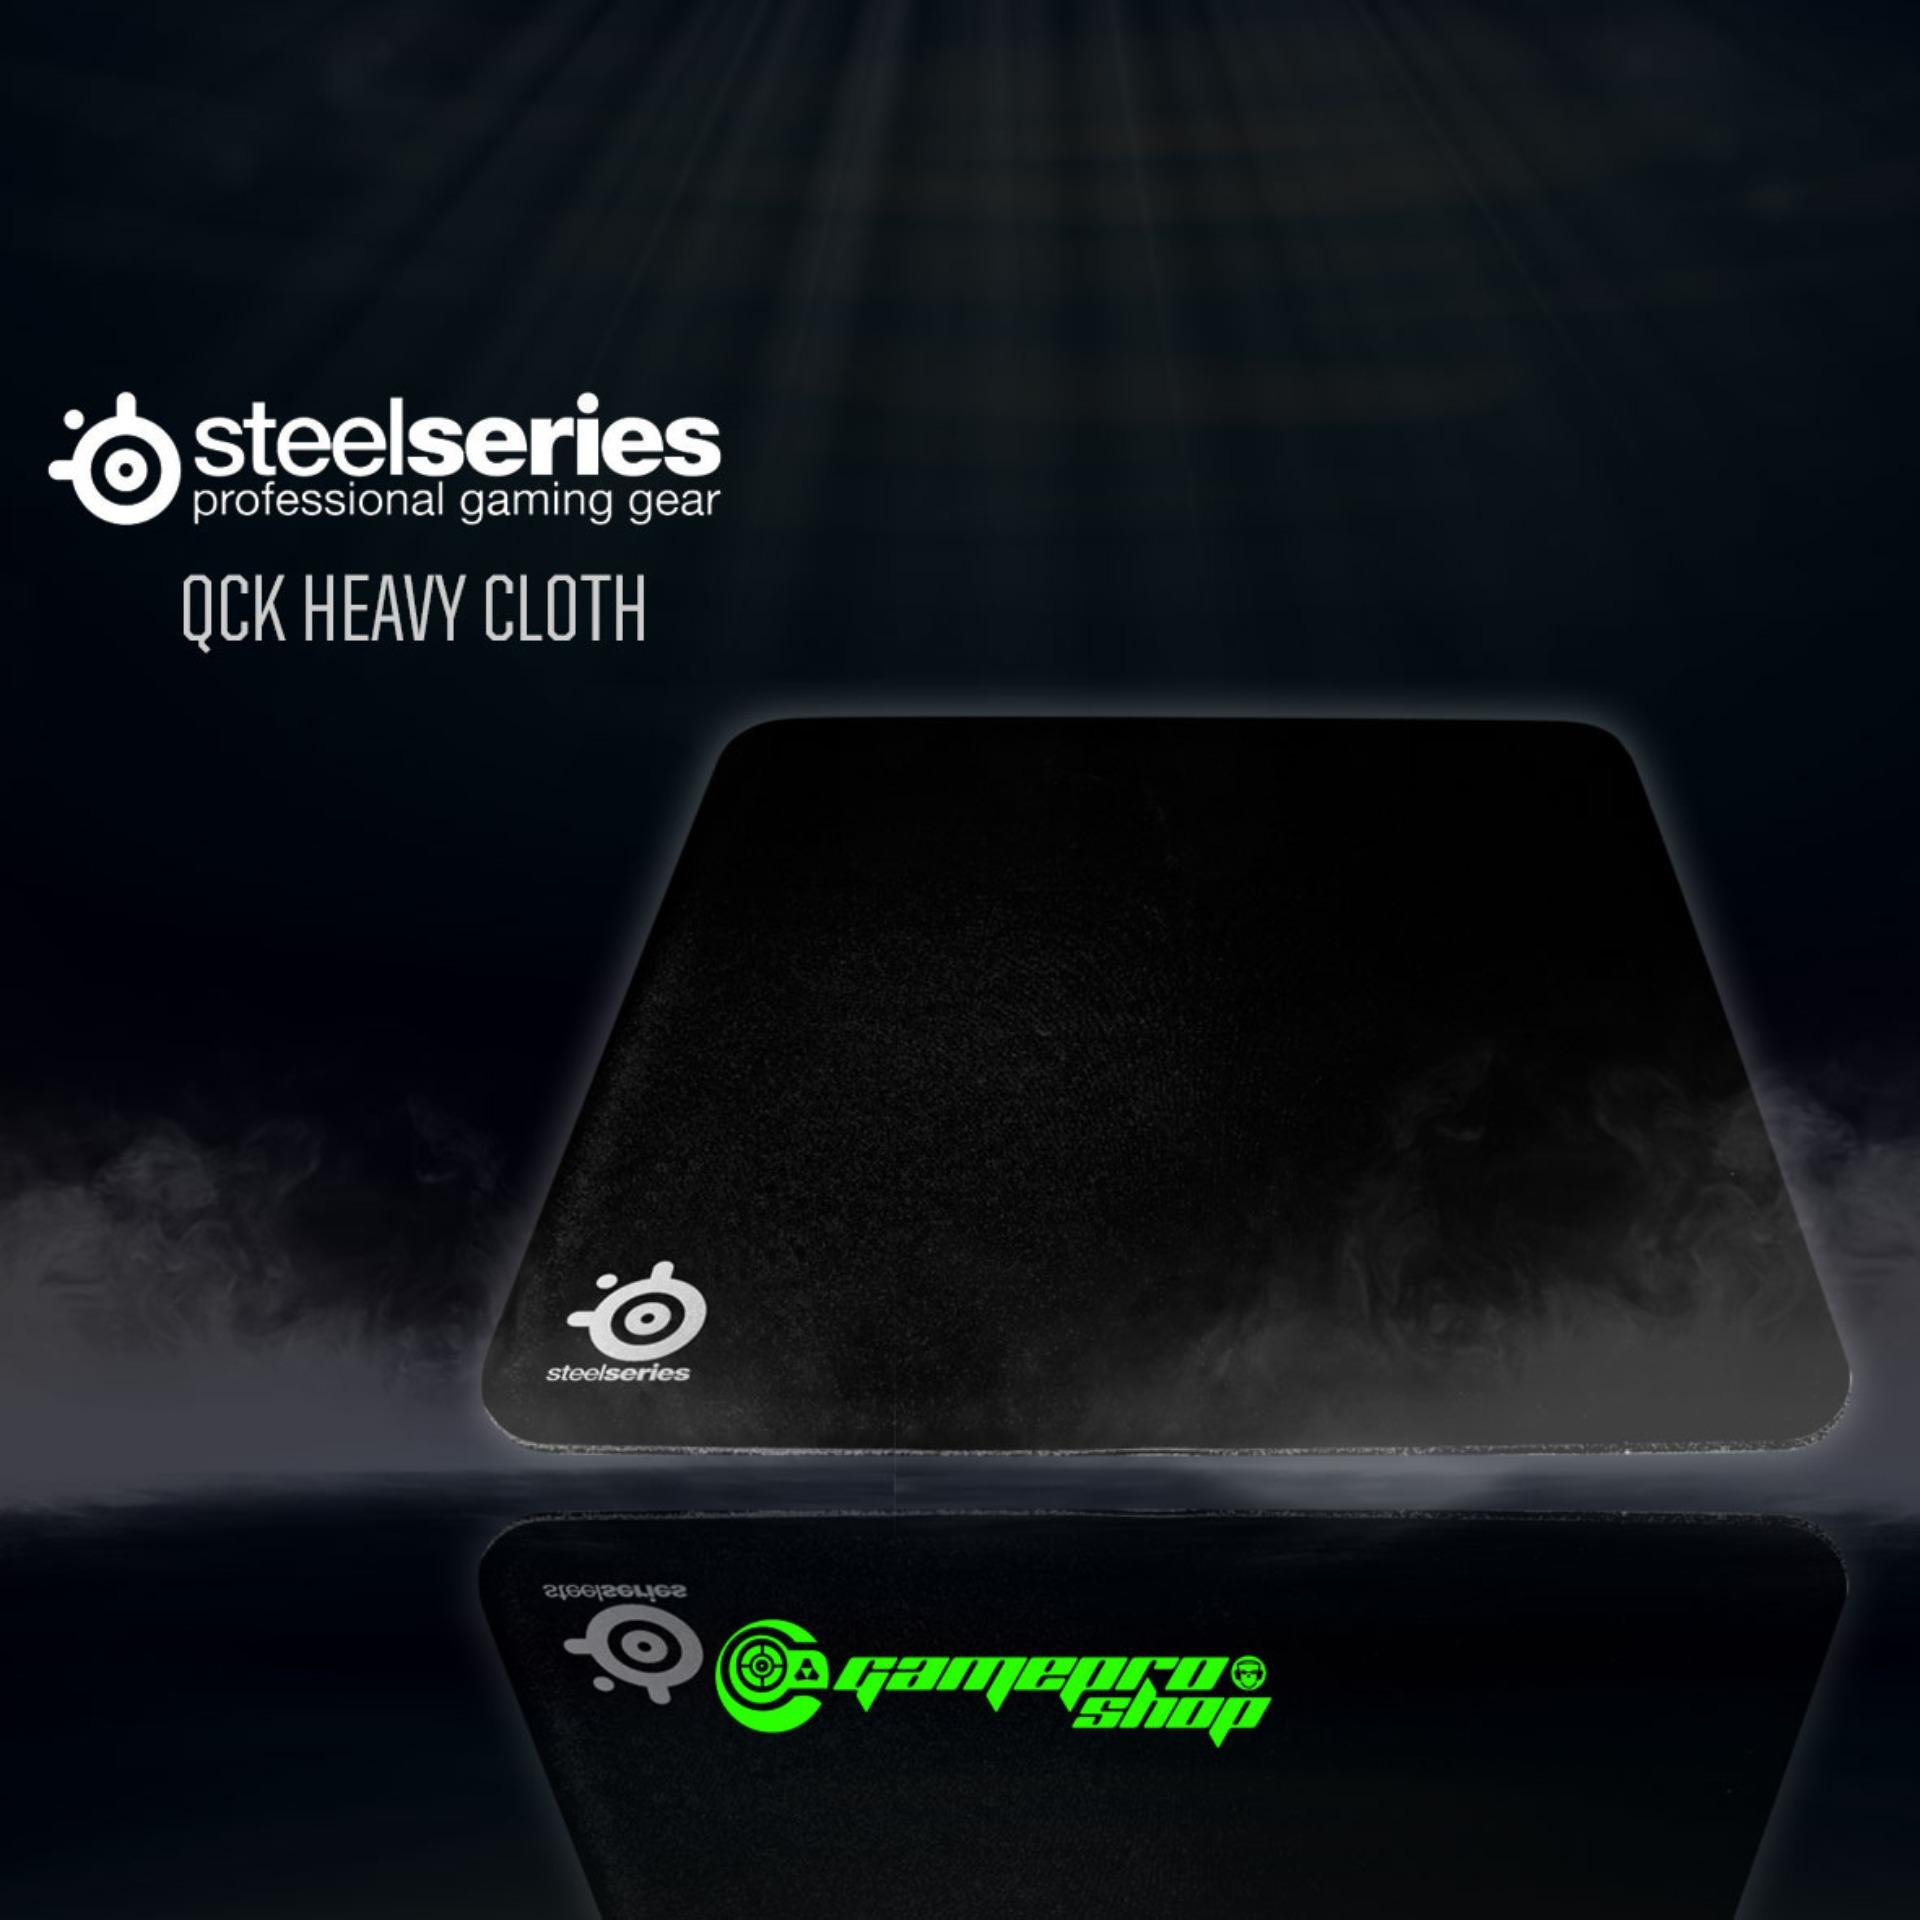 SteelSeries Qck Heavy Cloth Gaming Mouse Pad *GSS PROMO*